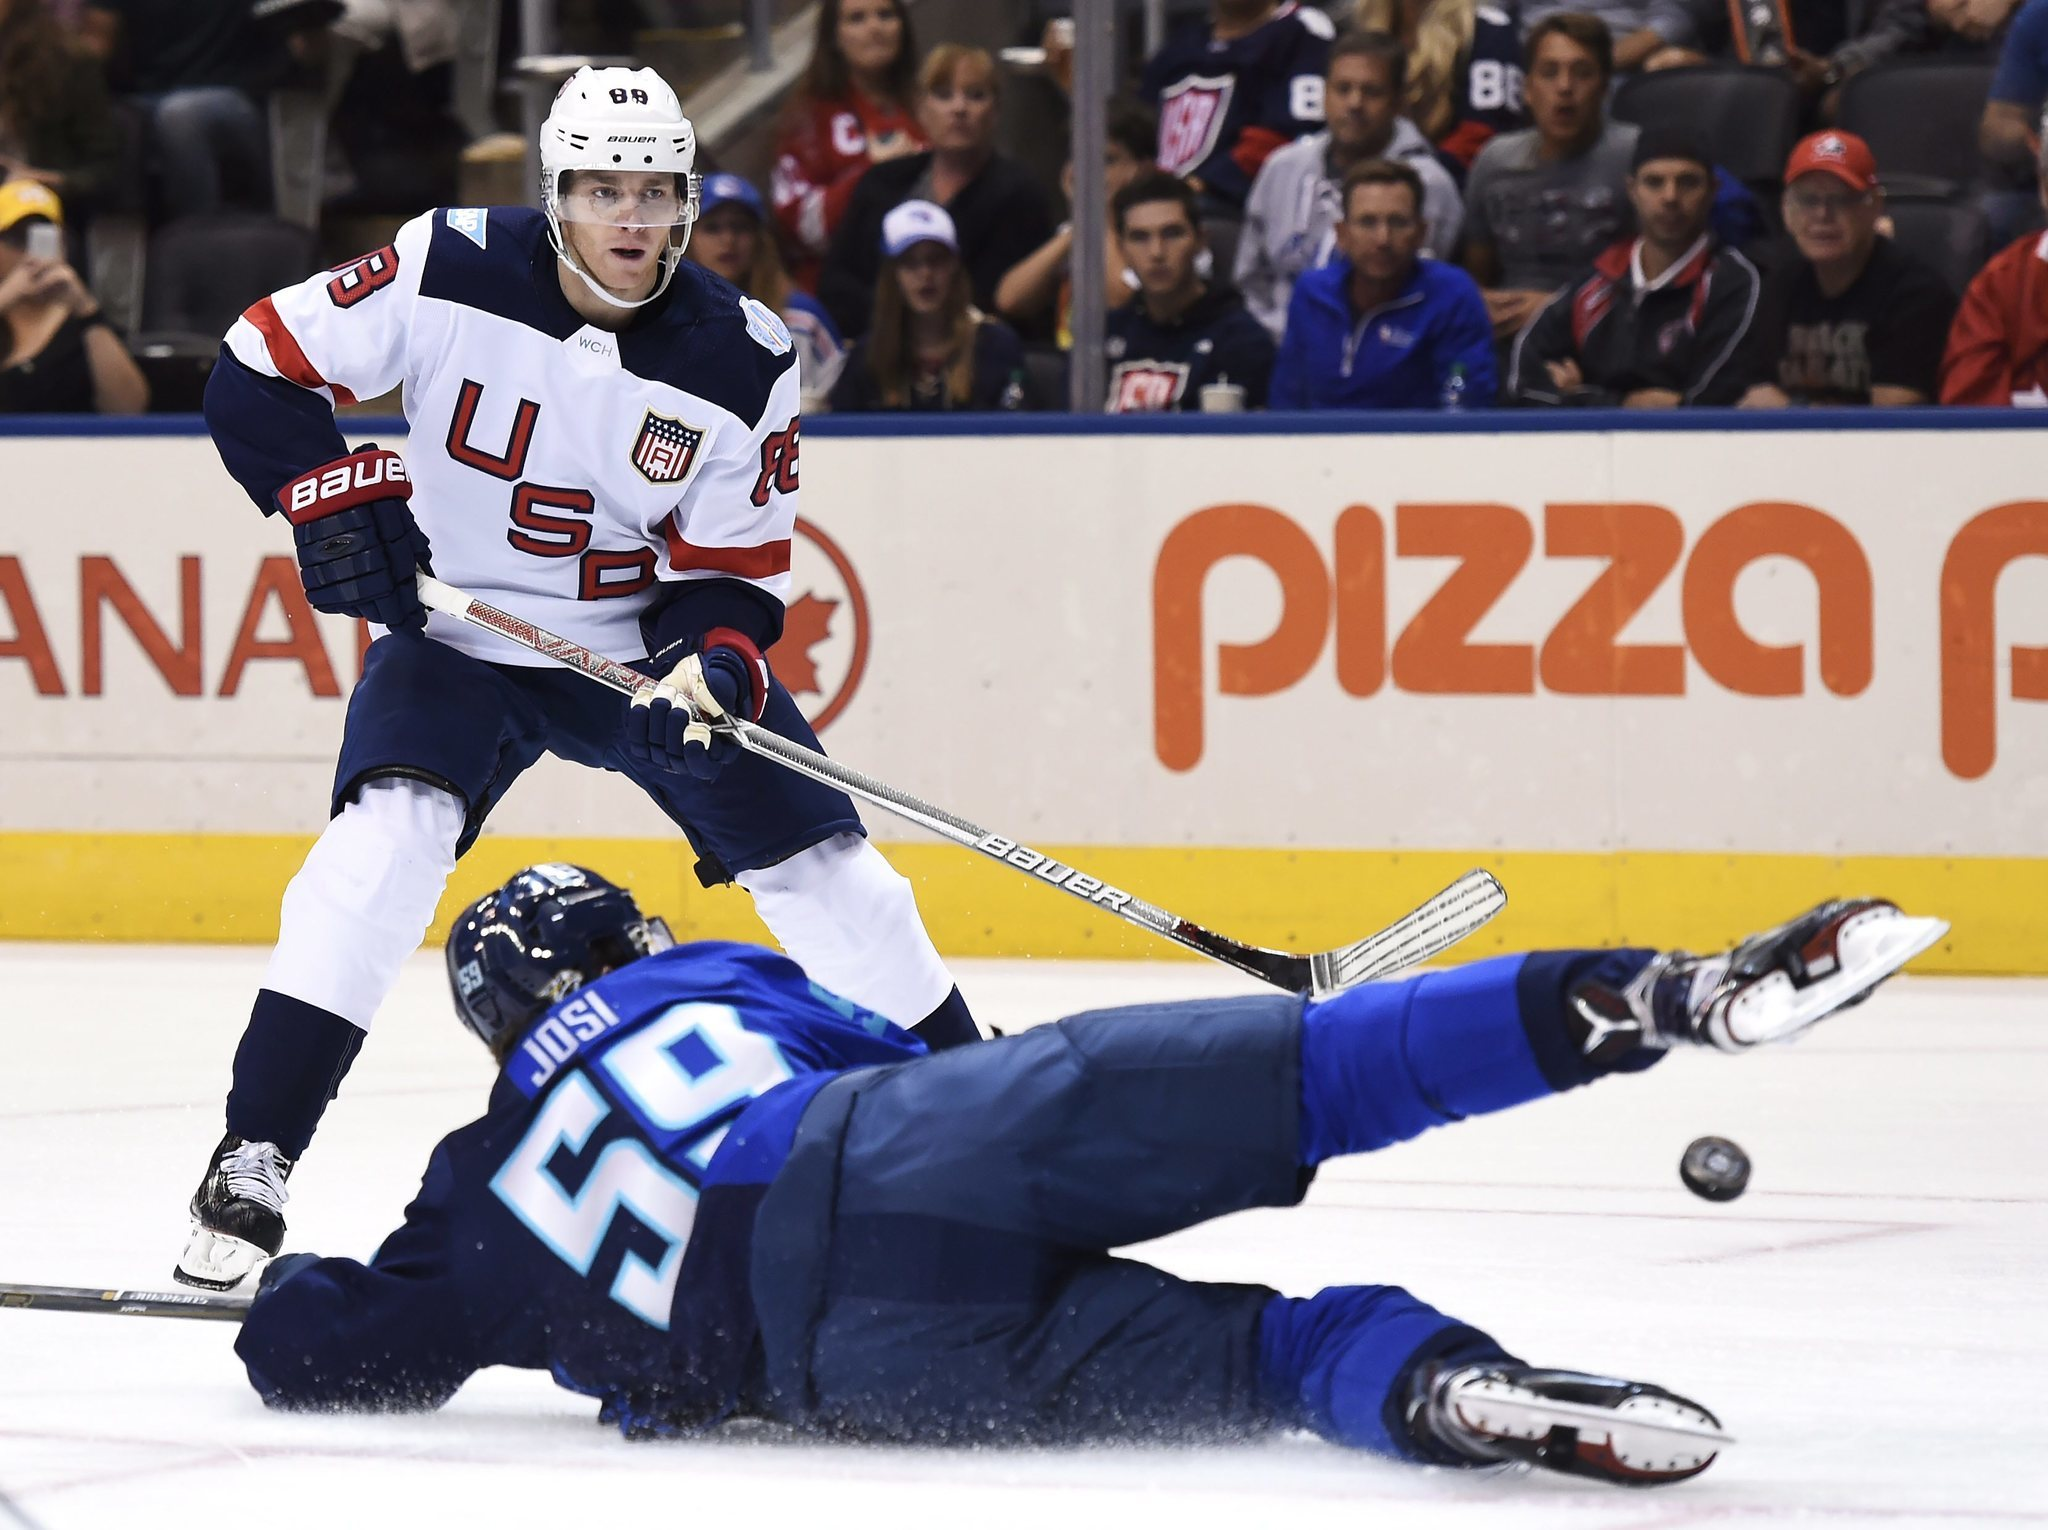 c481f70dc Team USA must defeat Canada or go home from World Cup of Hockey - Chicago  Tribune